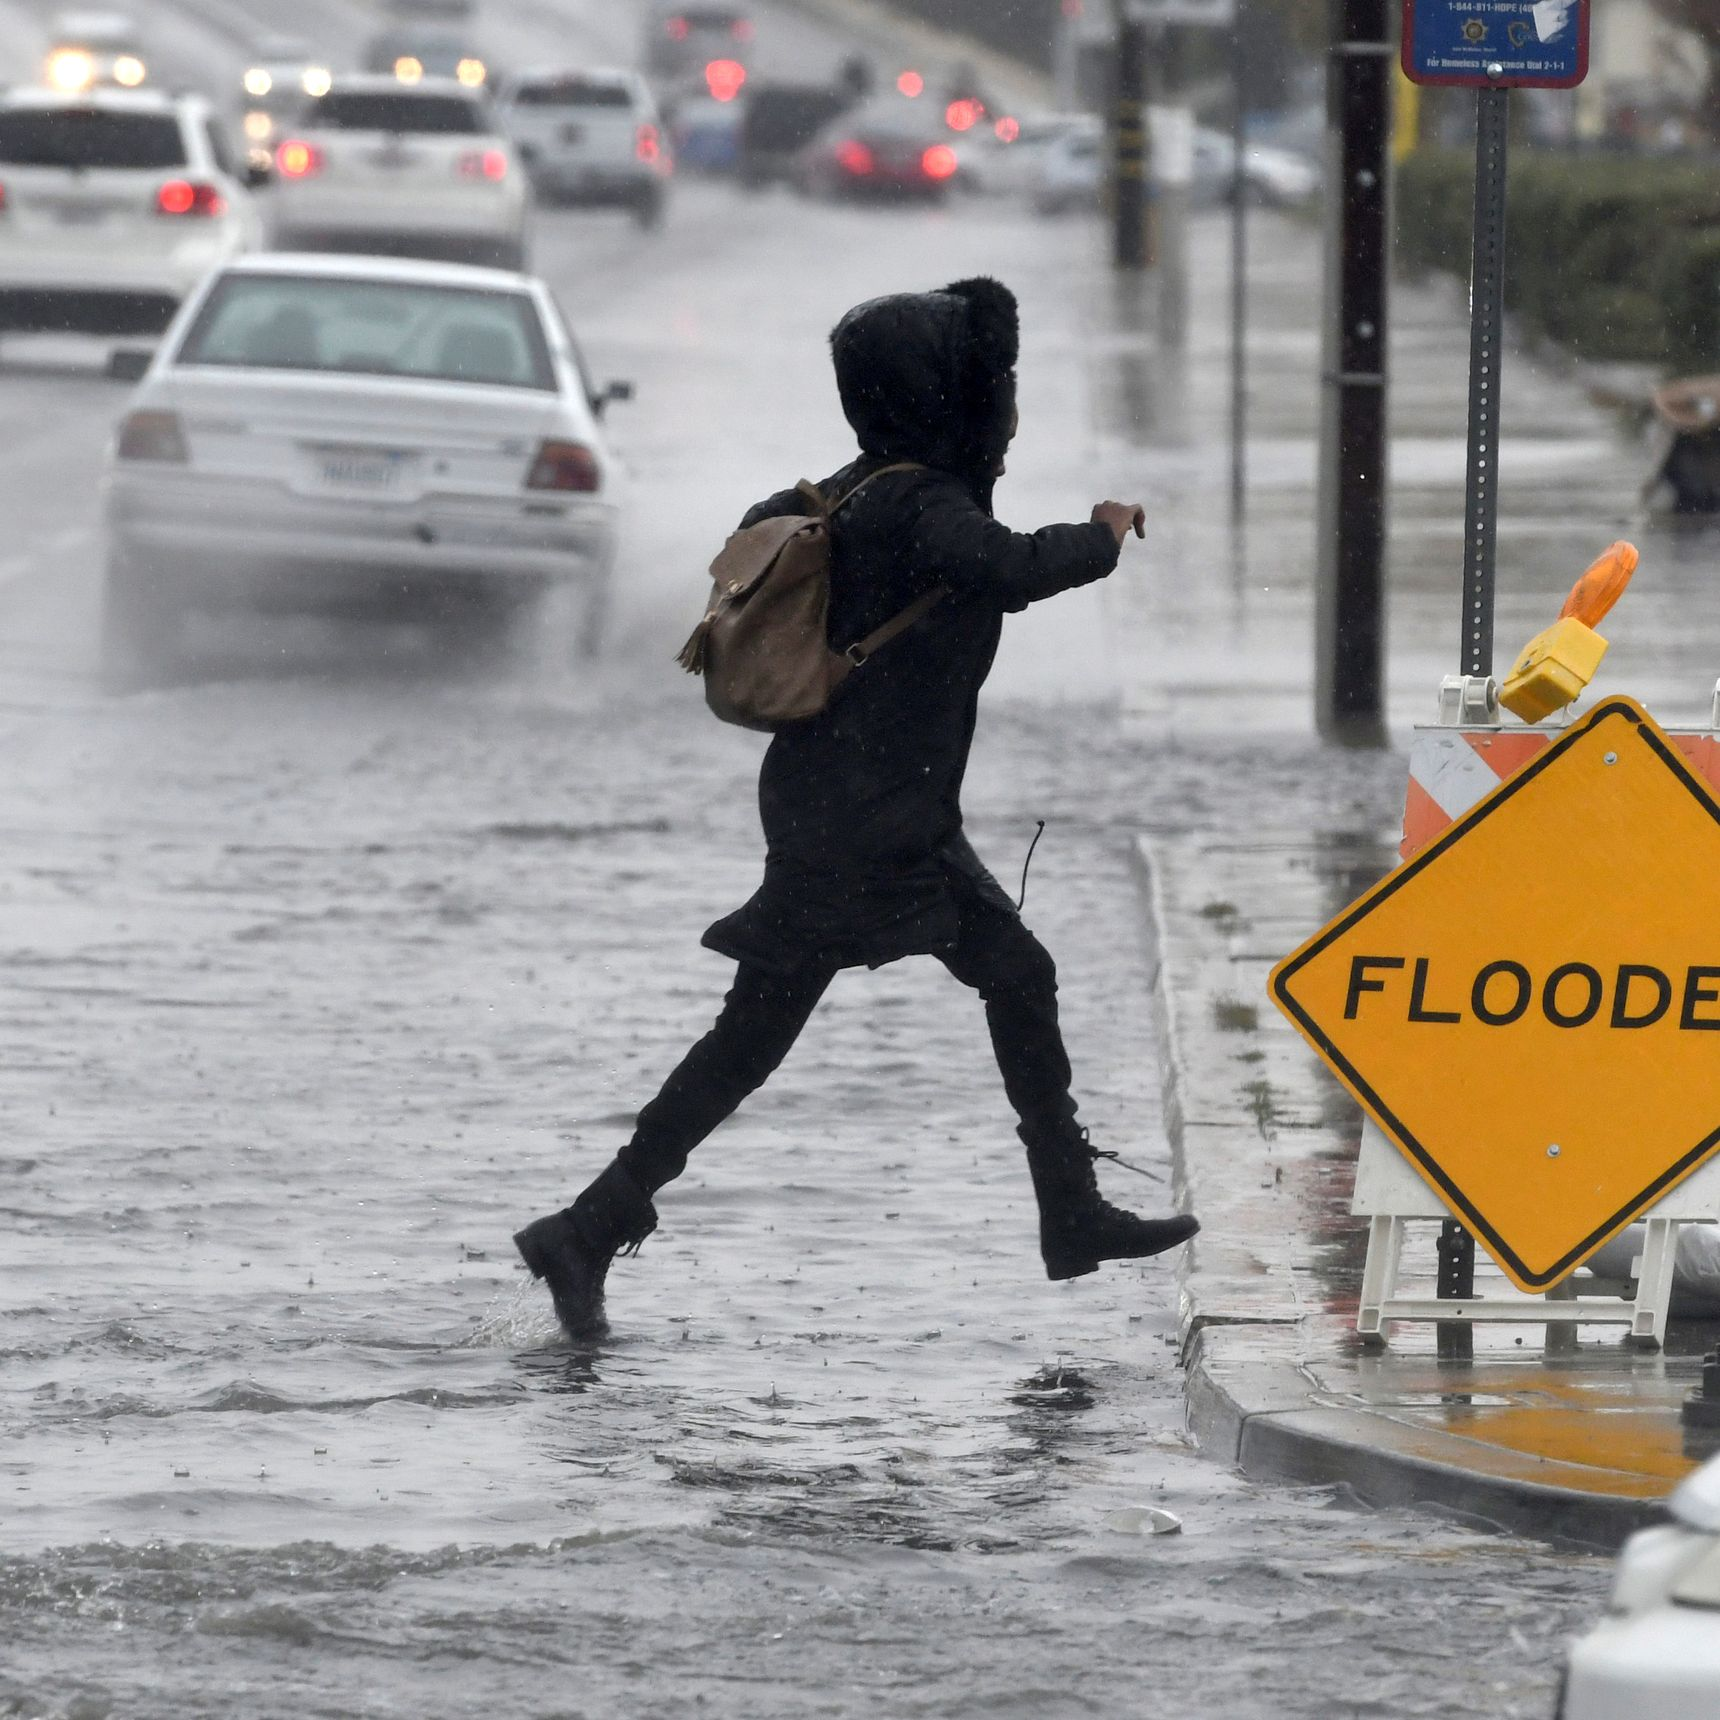 Wintry storm brings rain, snow, havoc across USA; more bad weather on the way